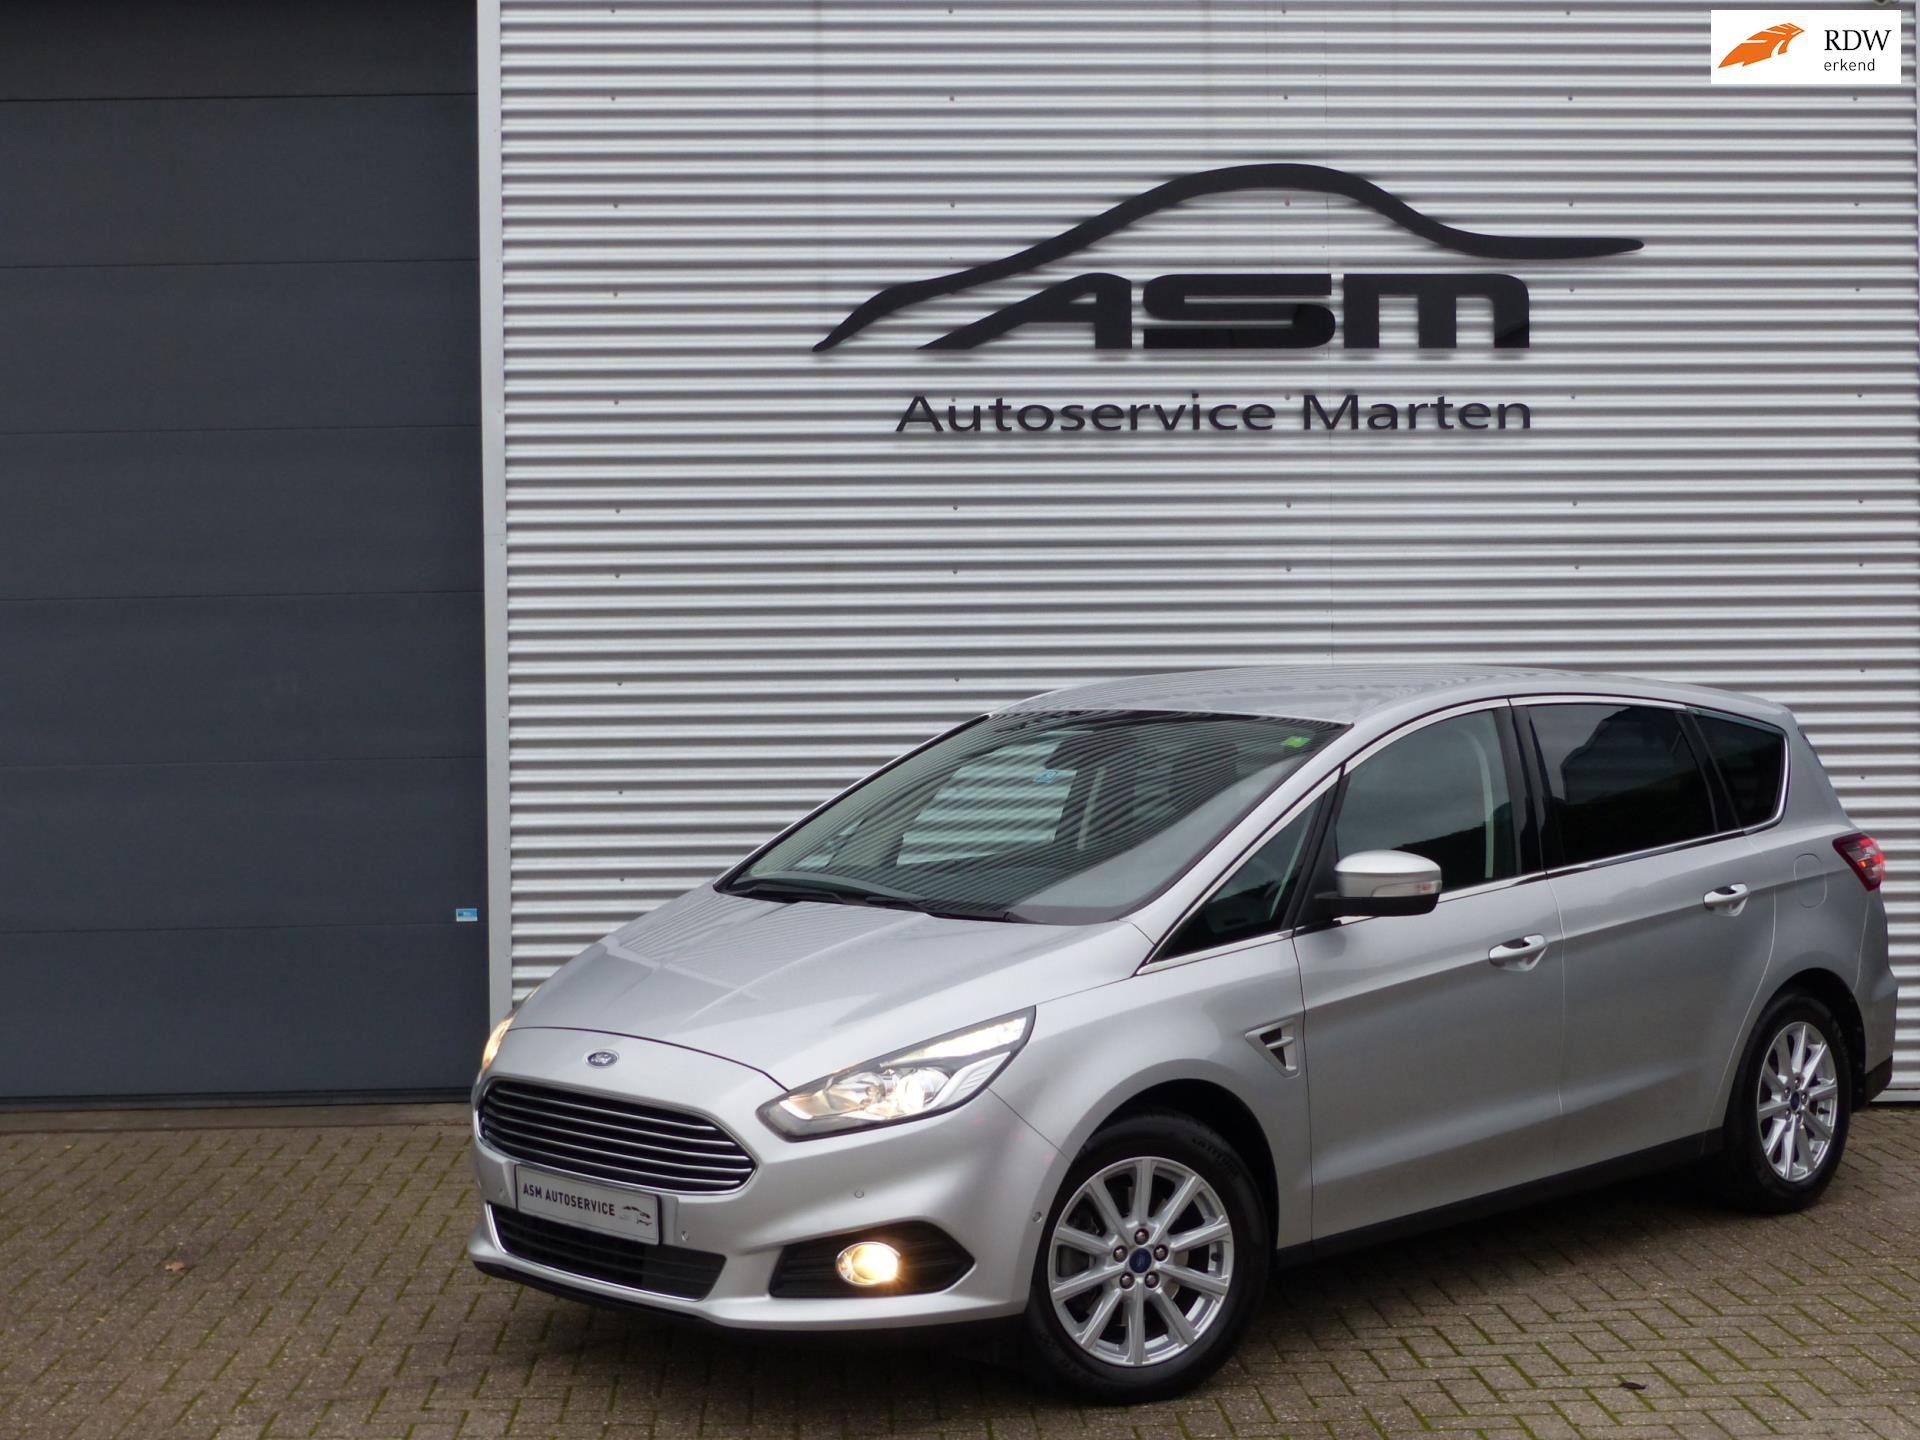 Ford S-Max occasion - ASM Autoservice Marten